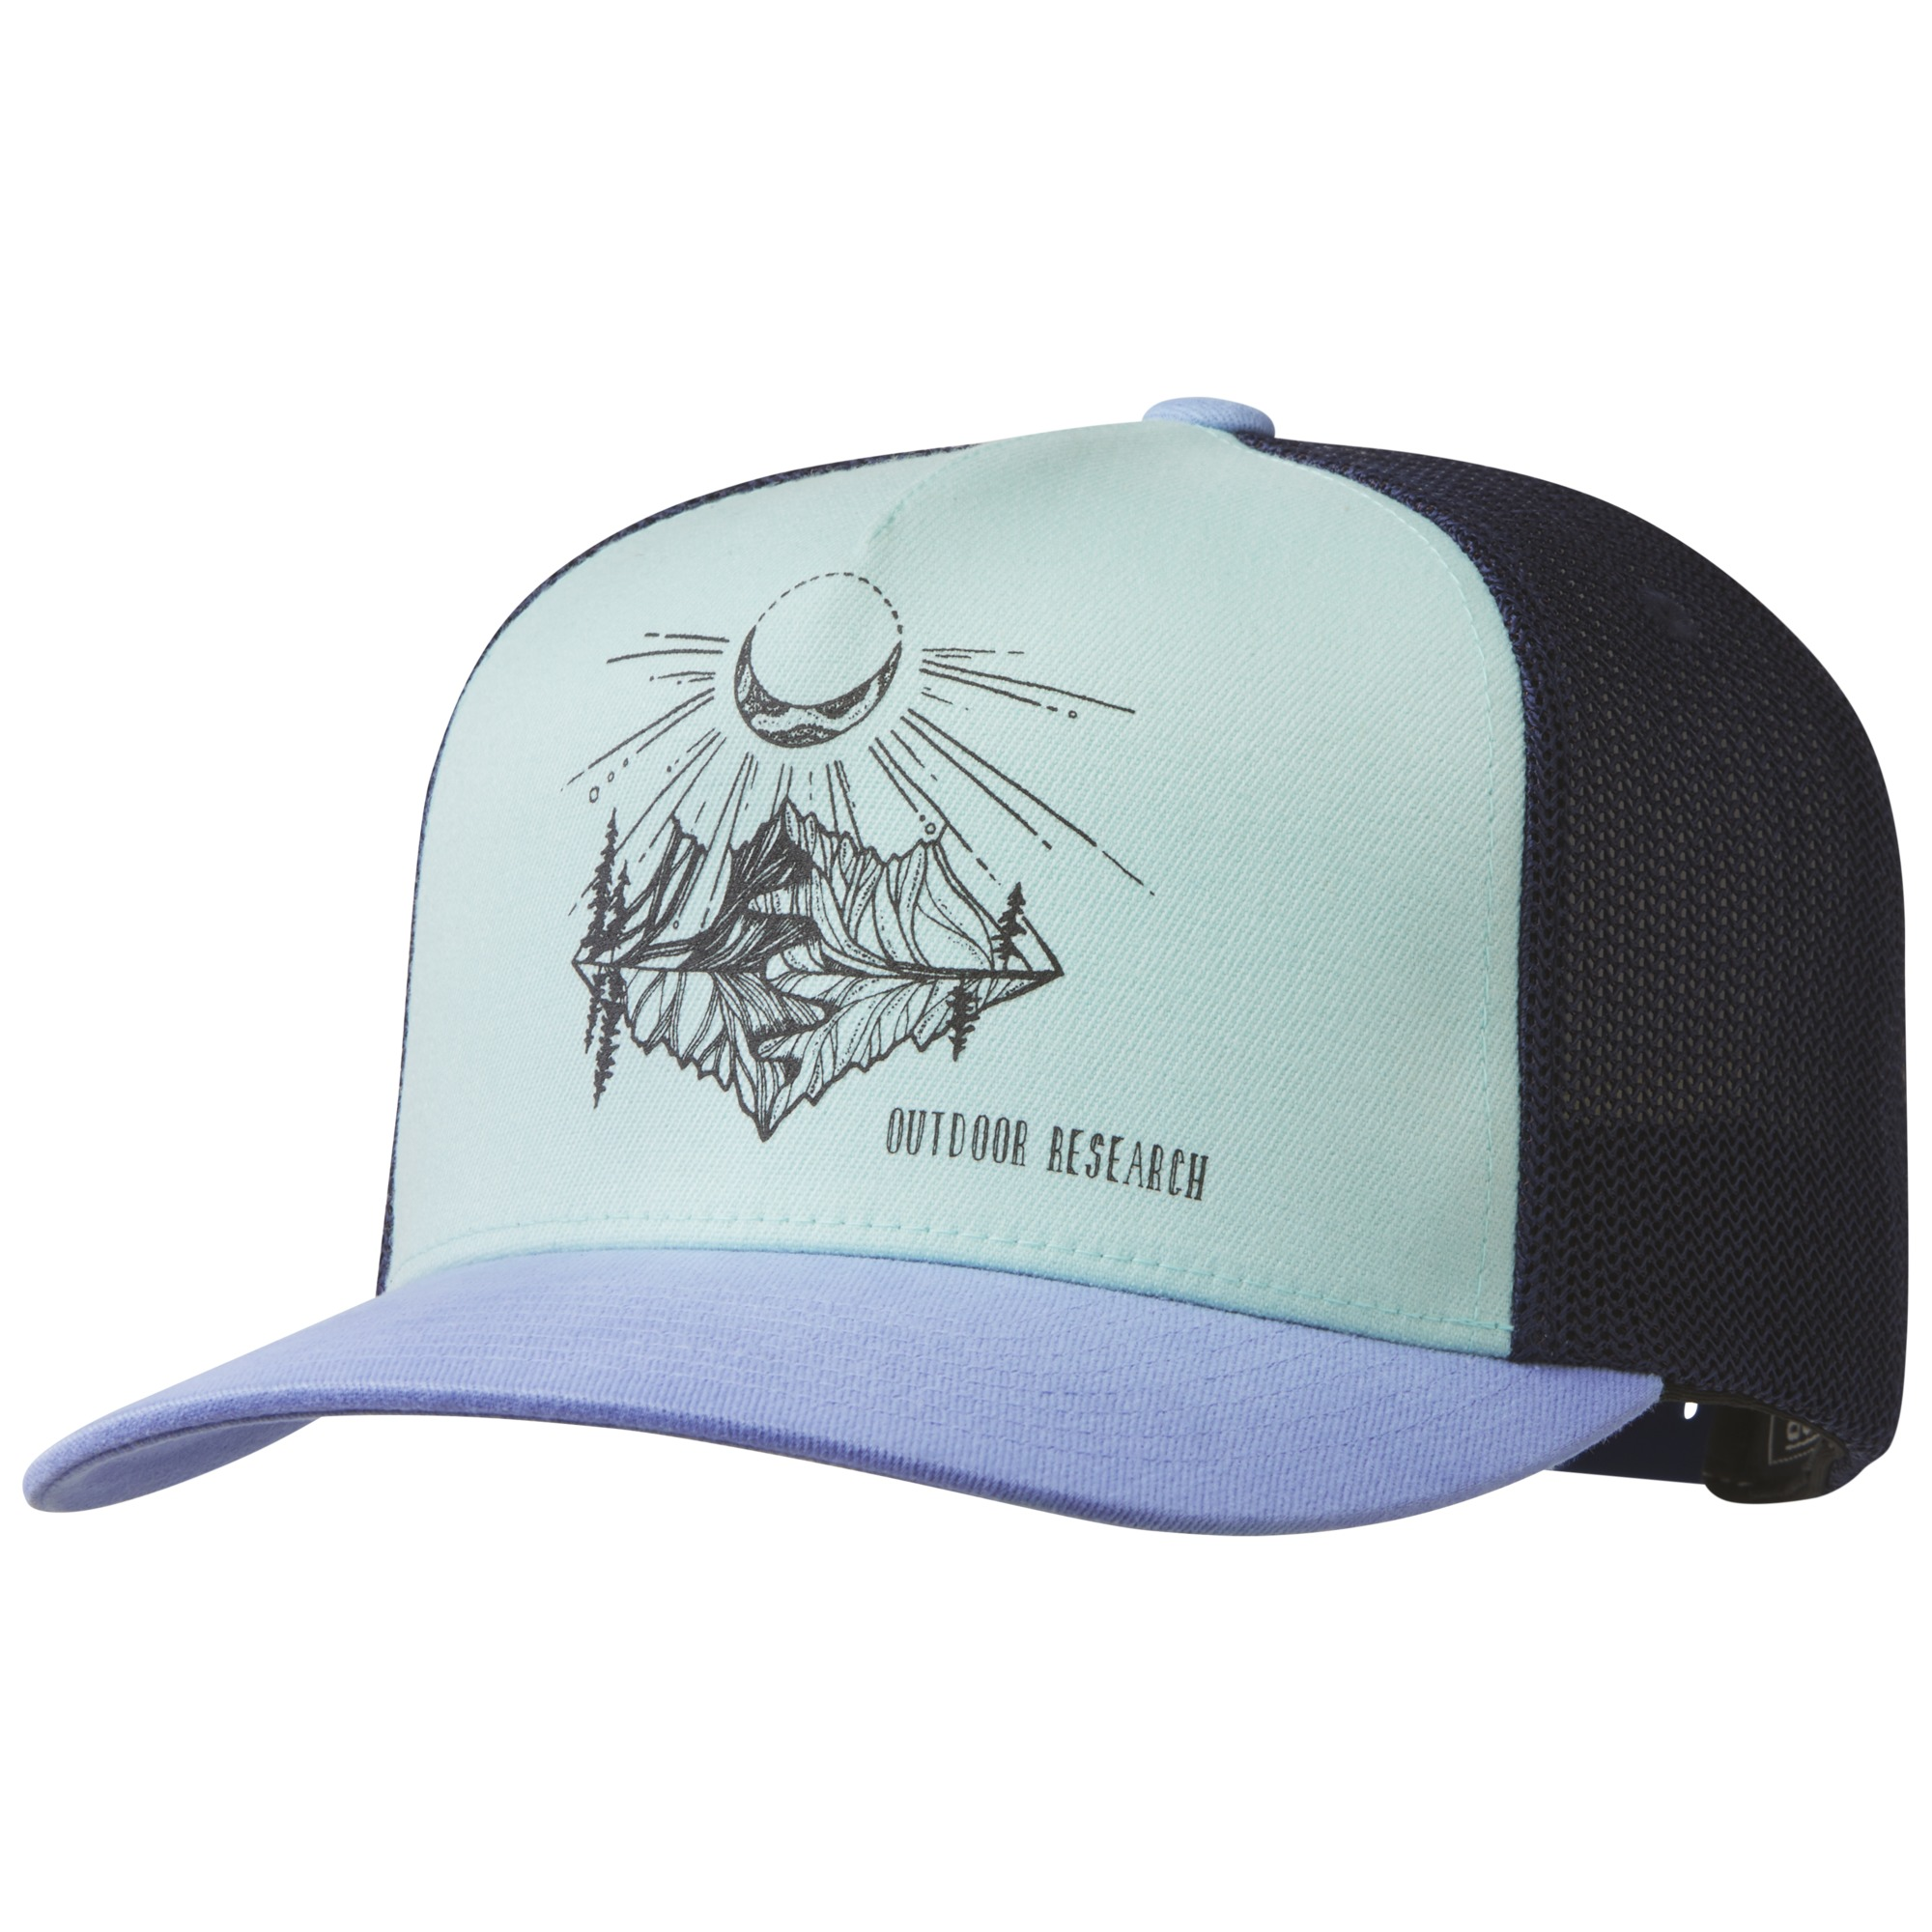 021381c04b6 Moonshine Trucker Hat - hydrangea/seaglass | Outdoor Research